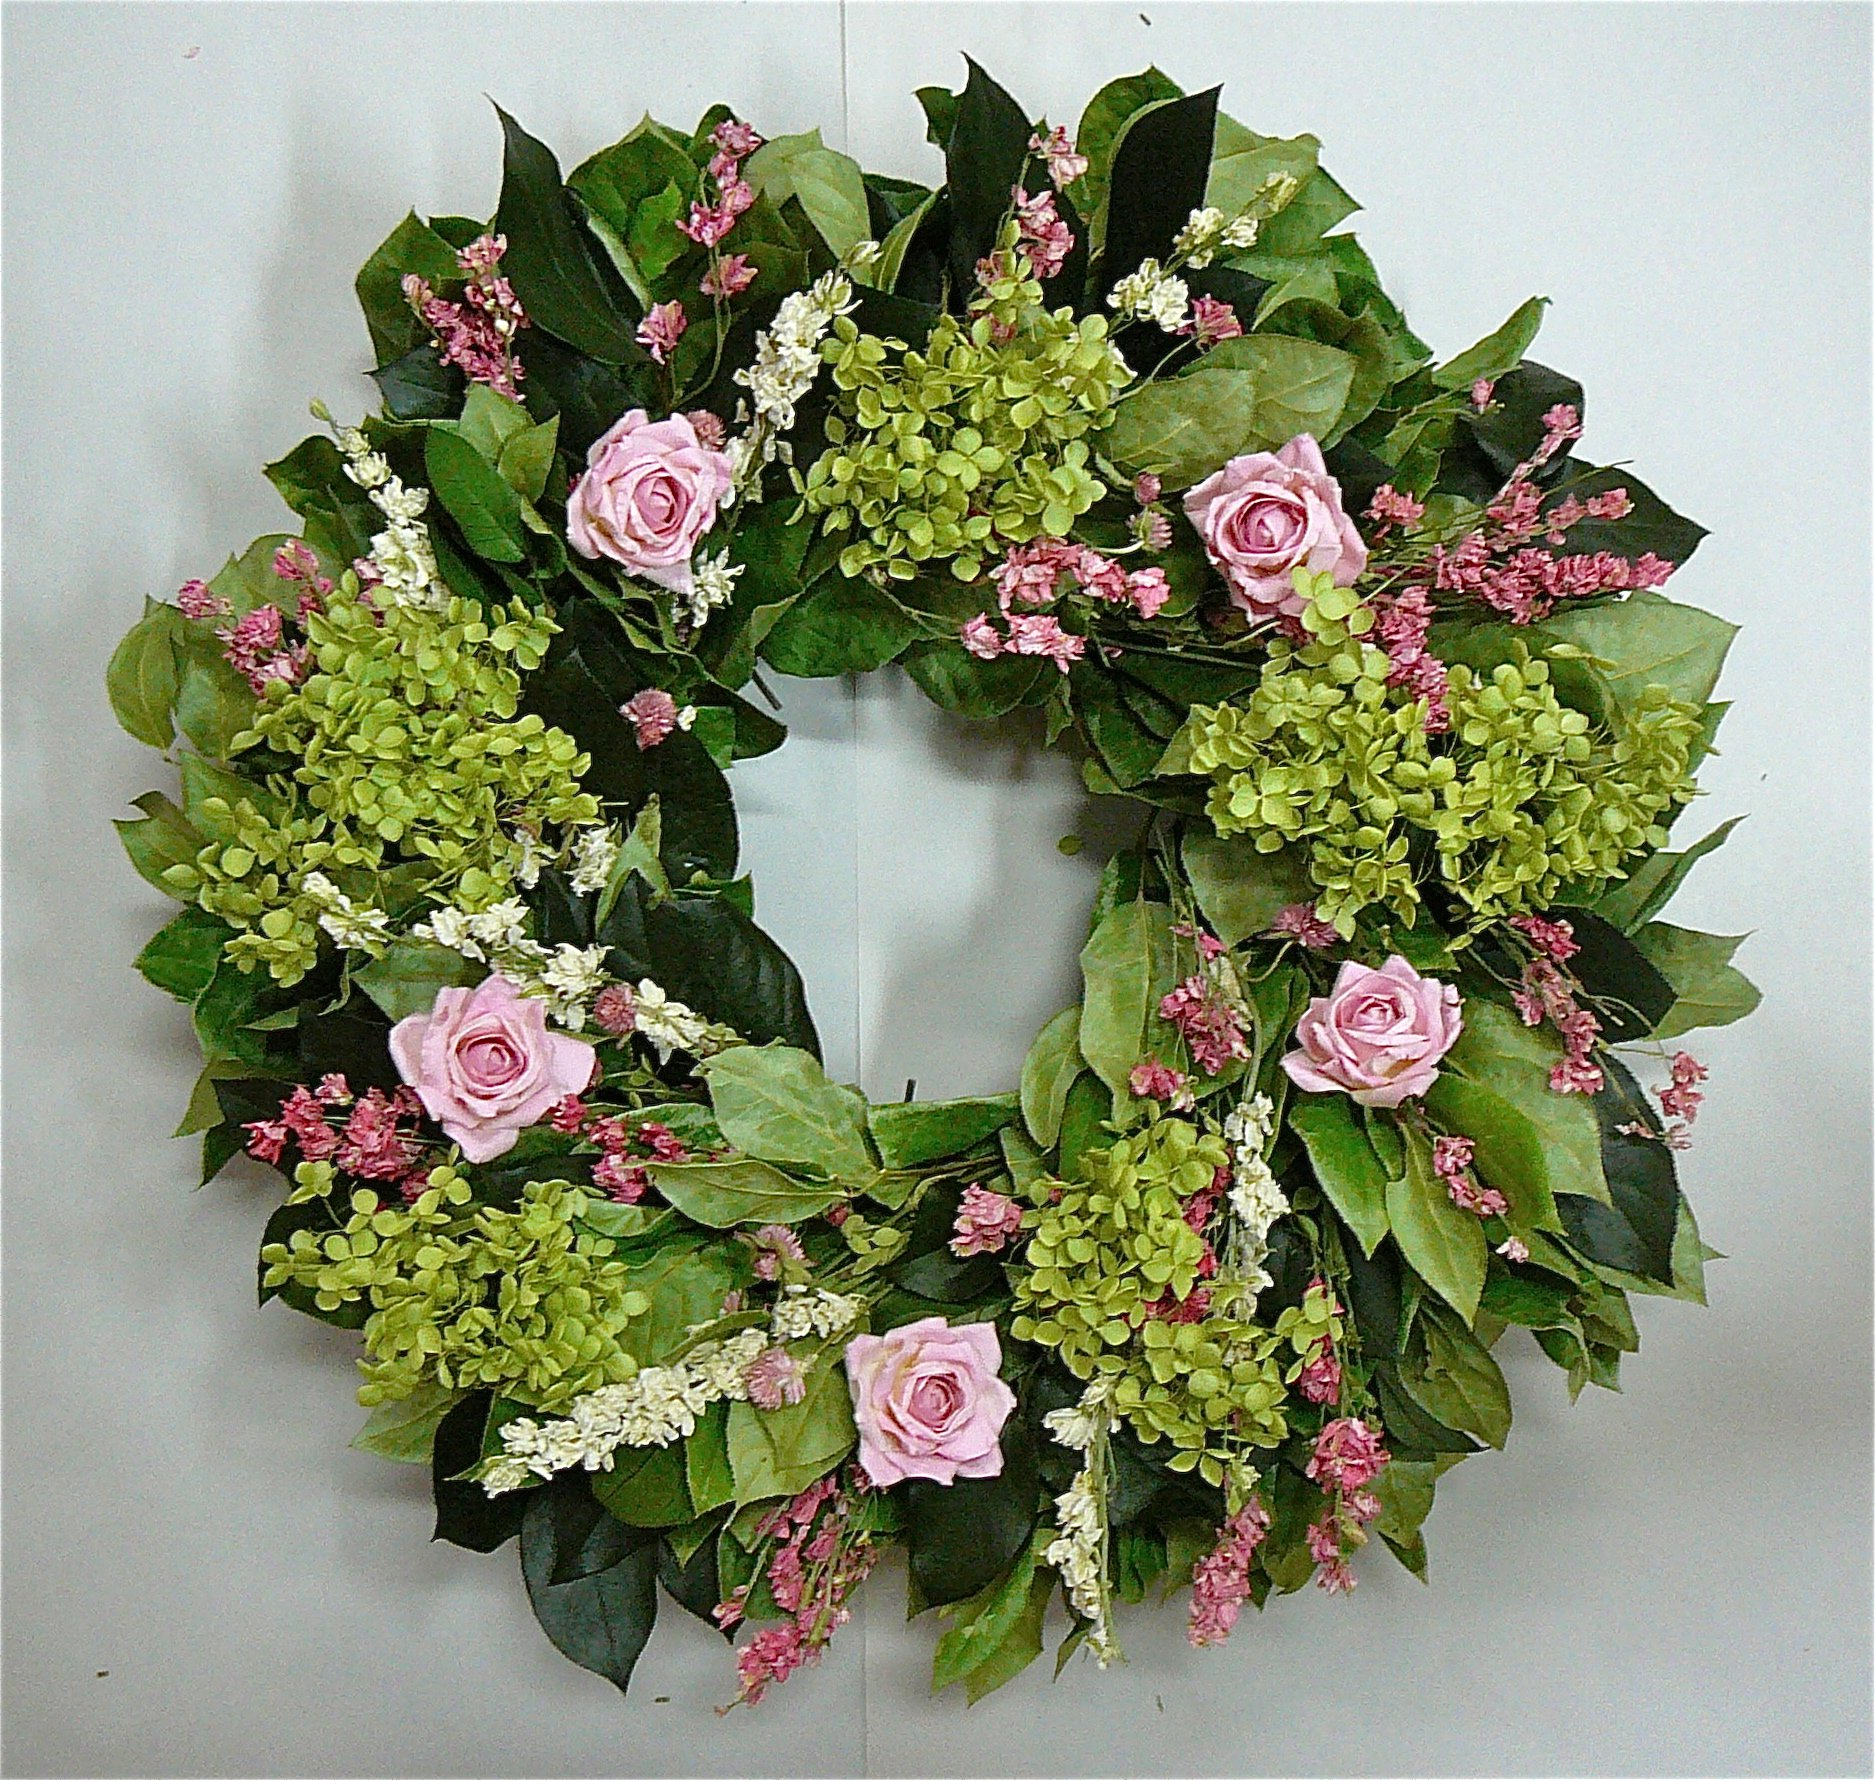 Cheap wreath dried flowers find wreath dried flowers deals on line get quotations spring wreath annabell the lush beauty dried flower wreath izmirmasajfo